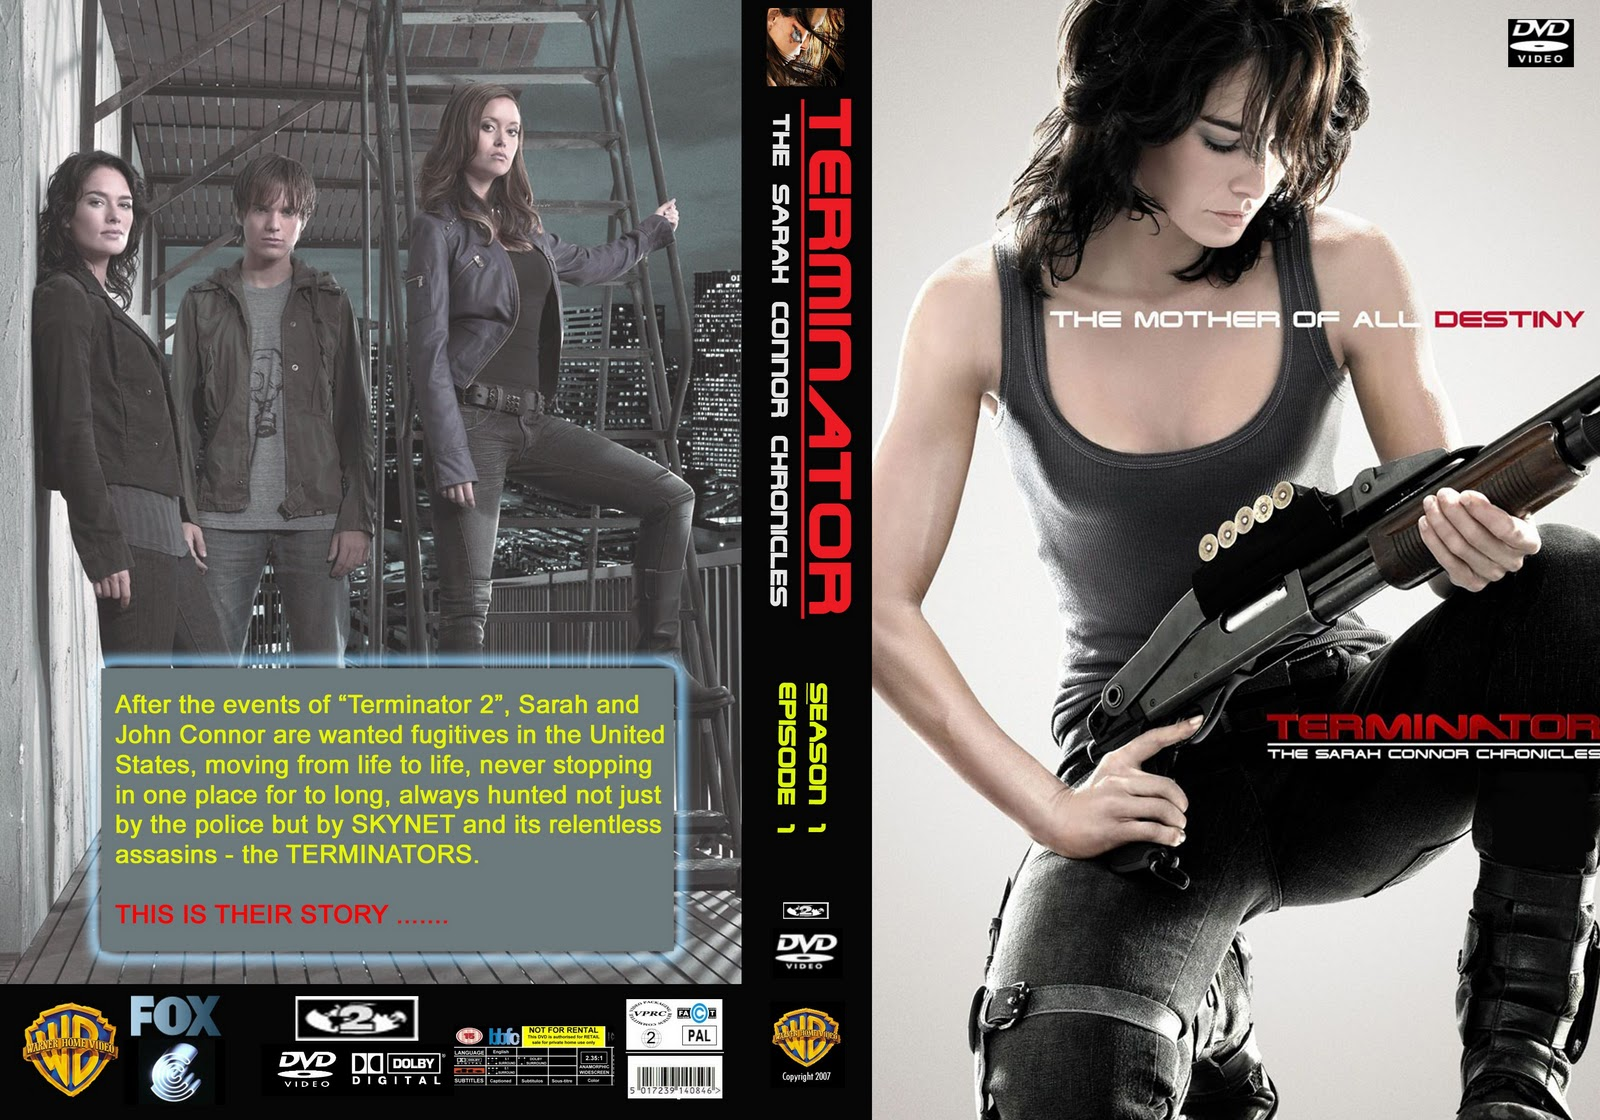 http://2.bp.blogspot.com/_OHyRrMrBP_A/TM--3jUncdI/AAAAAAAAAEs/DY2hDuo93a8/s1600/Terminator_-_The_Sarah_Connor_Chronicles_(pilot)_R2_Custom-%5Bcdcovers_cc%5D-front.jpg